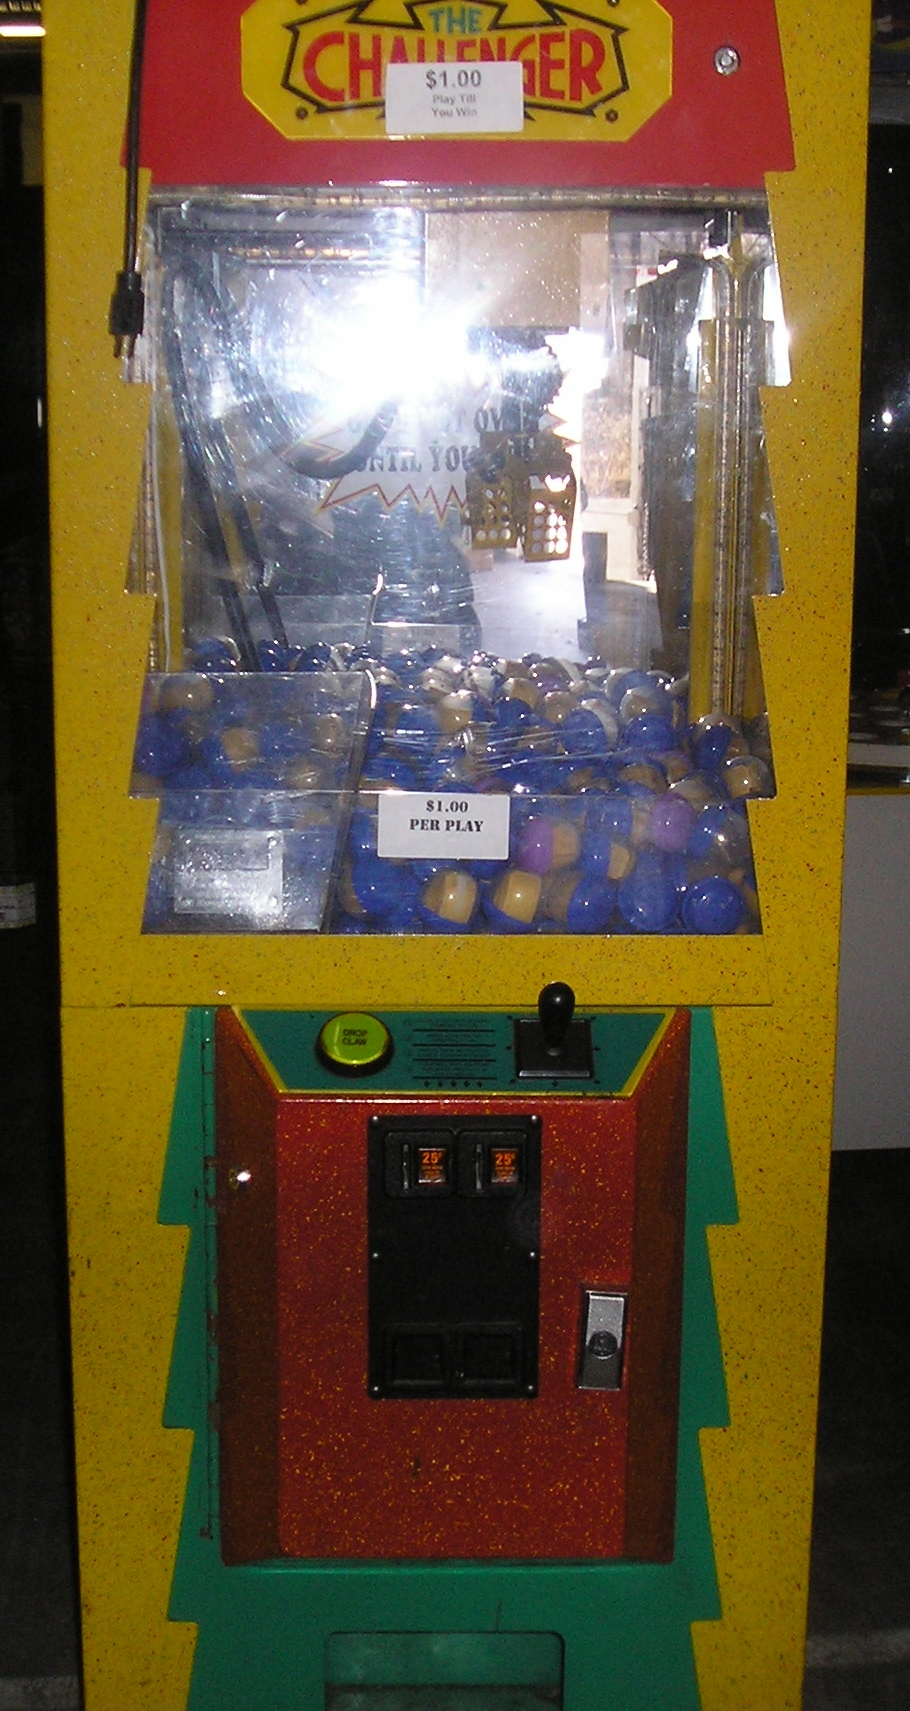 The Challenger Candy Crane Arcade Machine Game For Sale